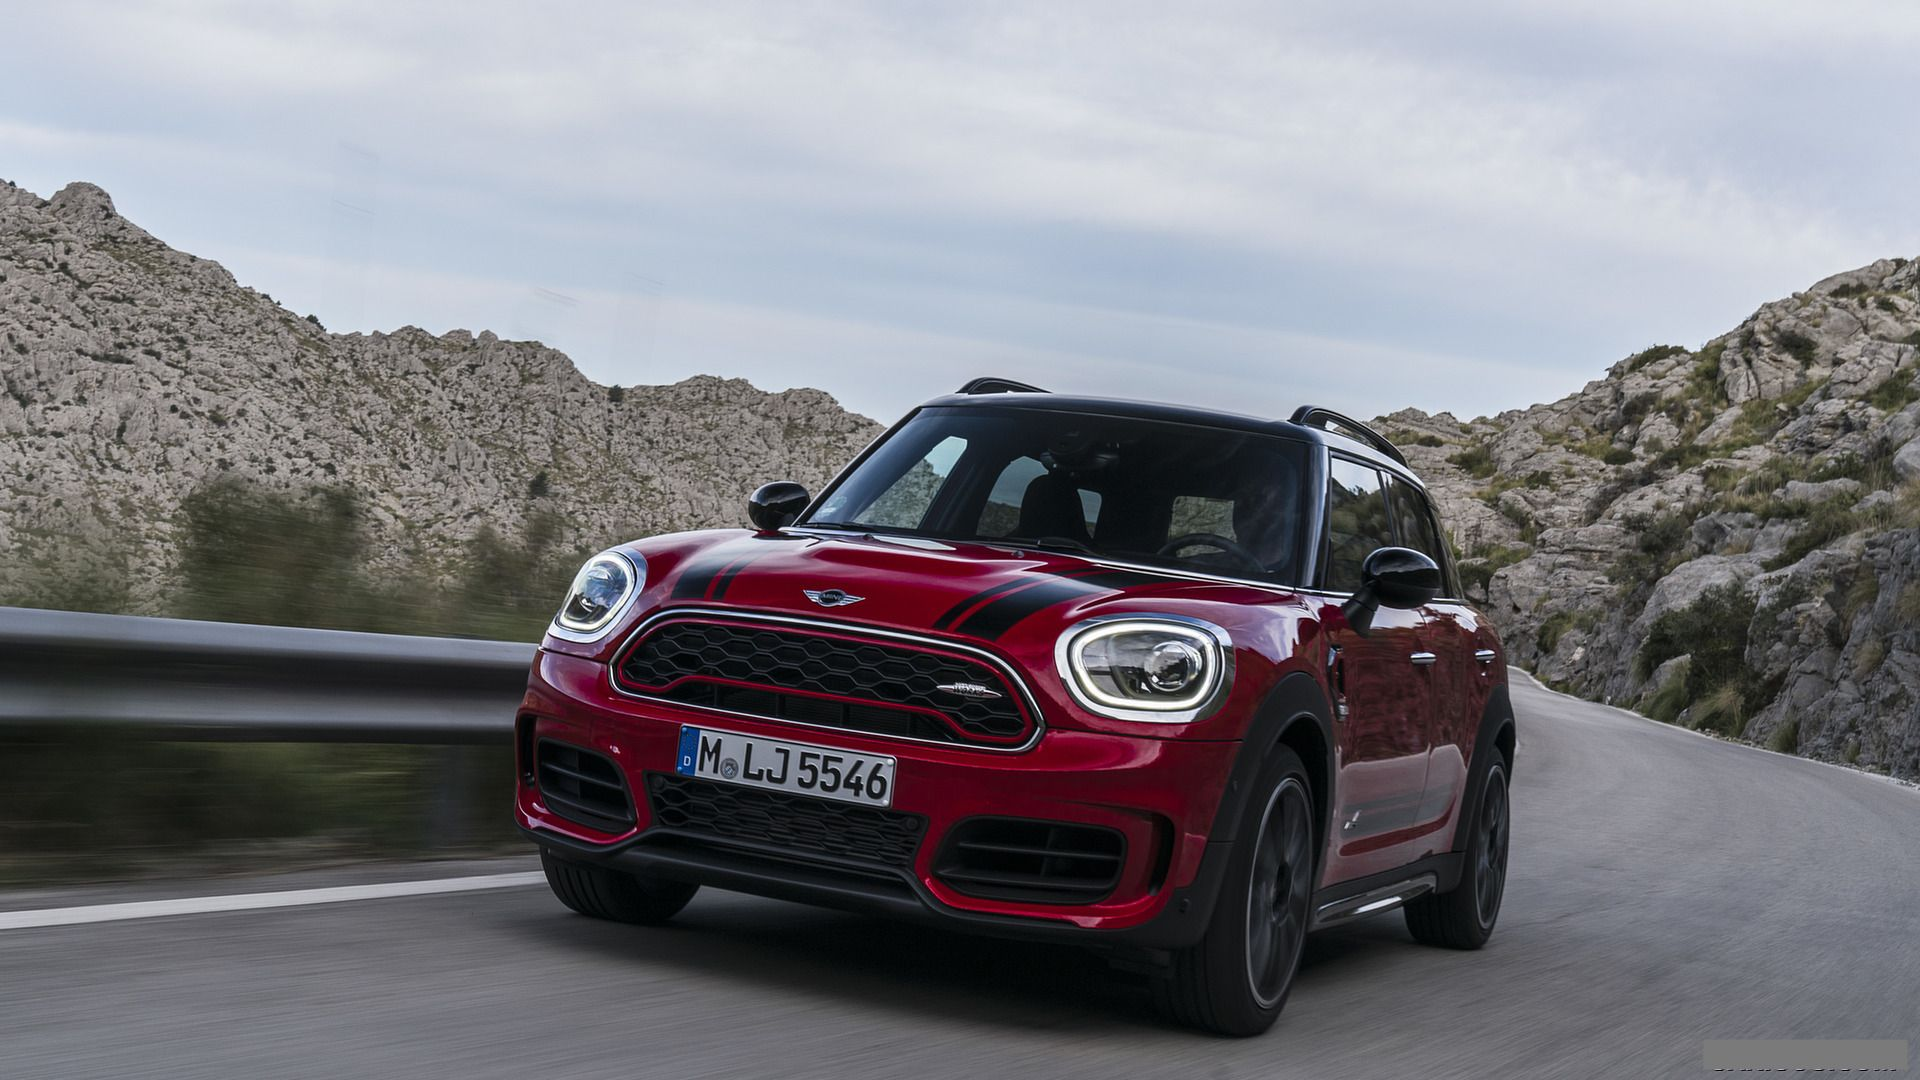 mini cooper countryman all 4 john cooper works 17, hire , rent , location , alquiler , aluguel, Verleih , kiralık , kiralama , прокат , 聘请 , 僦 , לחכור - ParisLuxuryCar, paris, luxury